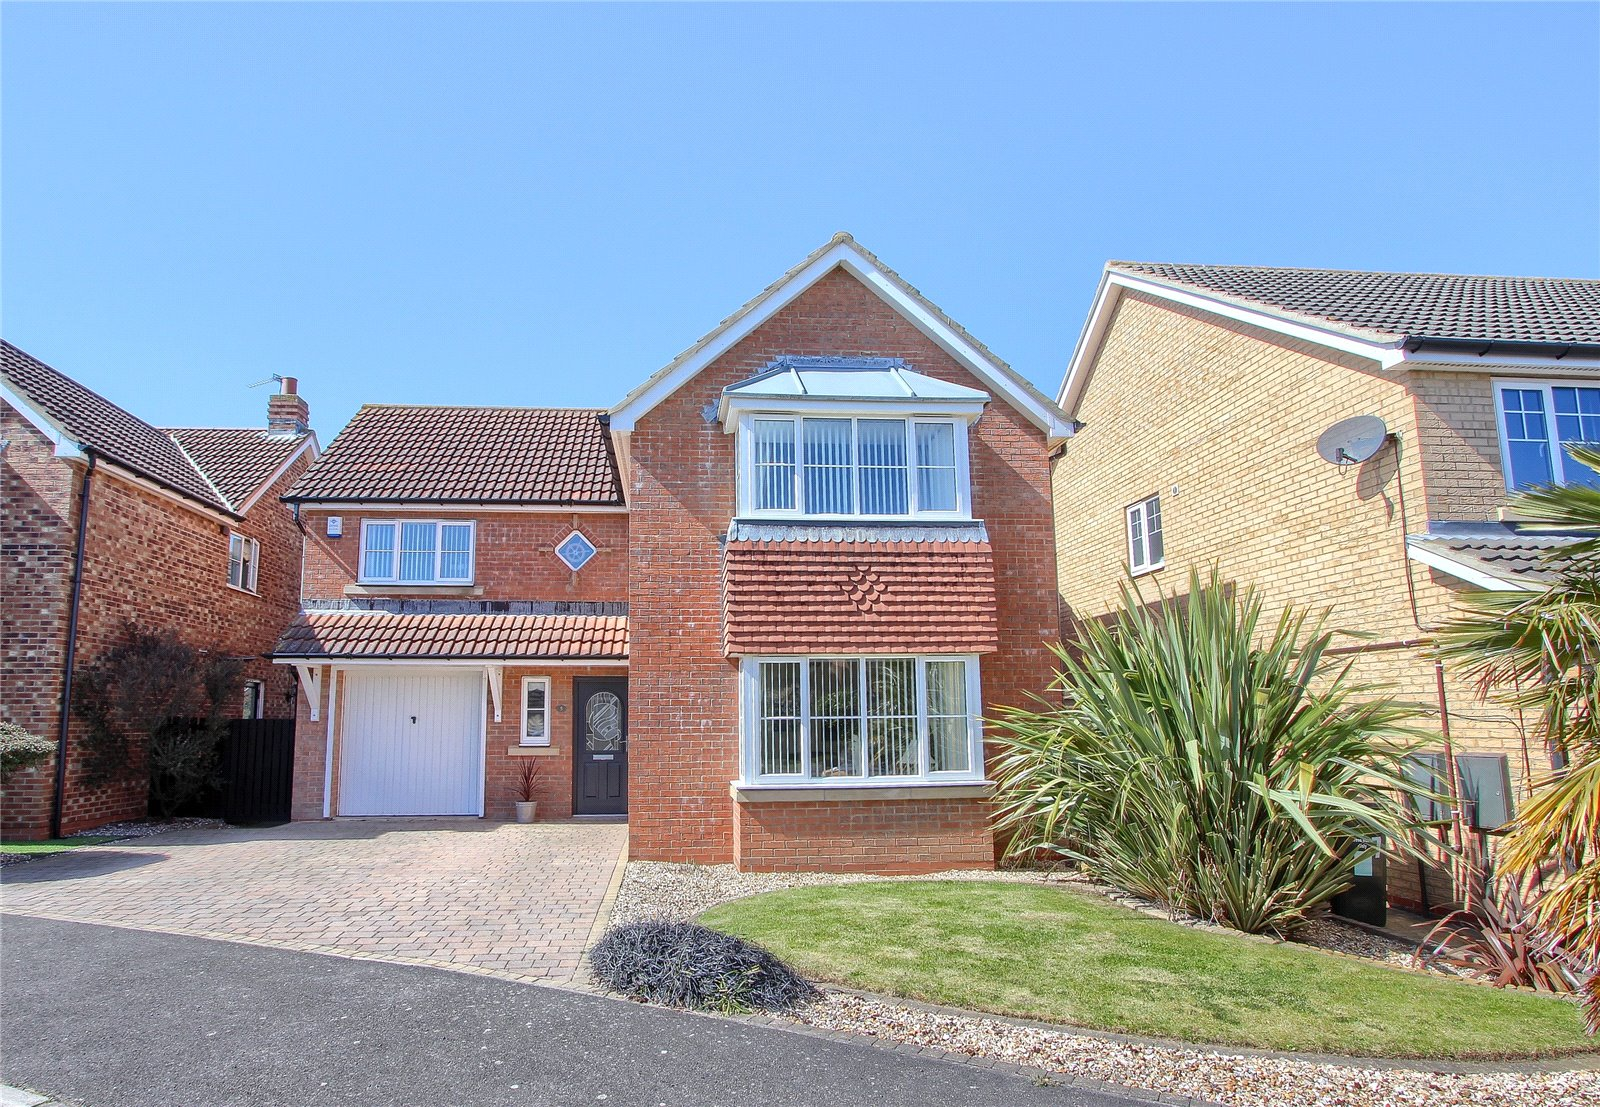 4 bed house for sale in Deepdene Grove, Redcar  - Property Image 1